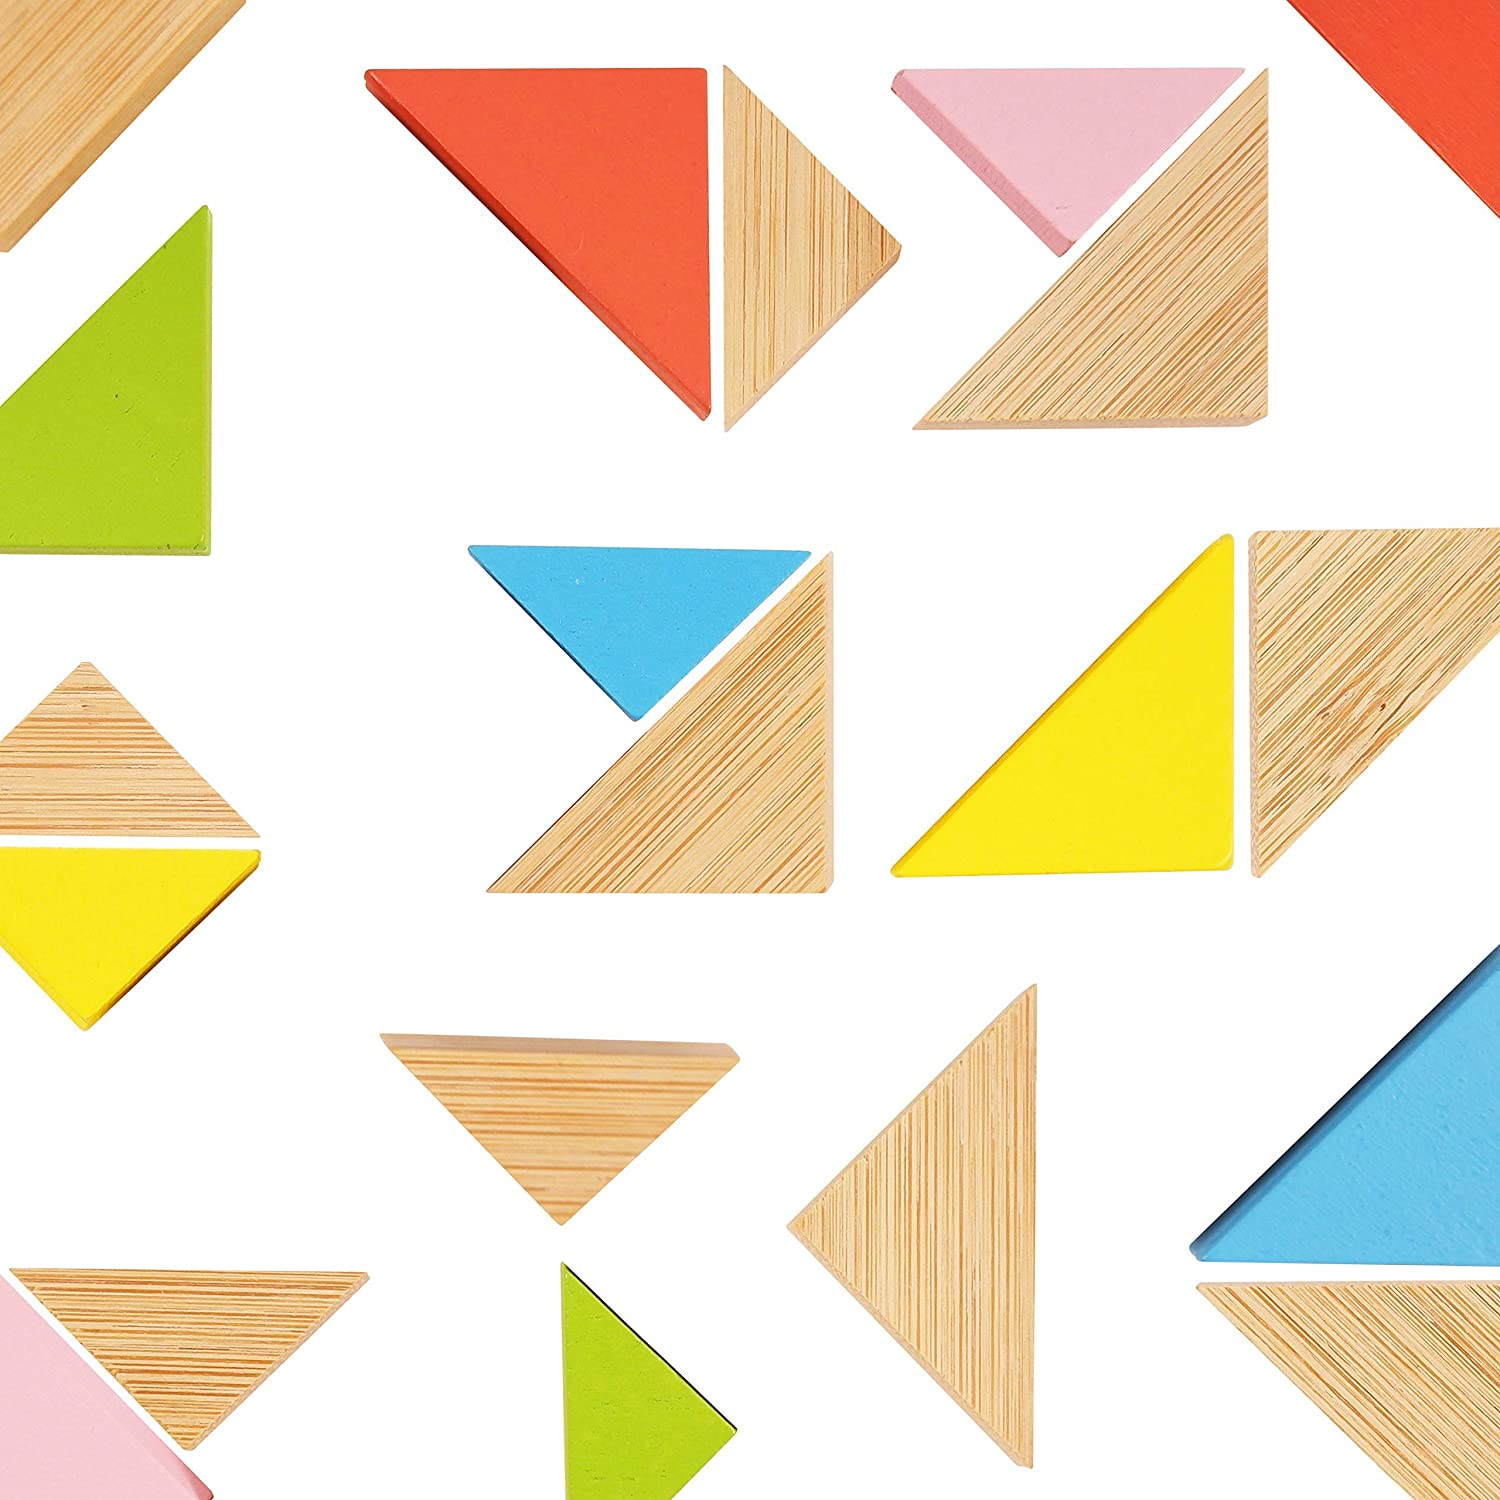 Free shipping on Deluxe posting reviews Pack of 20 Multi-Colored Triangle - Cute Bamboo Sturdy Magnets